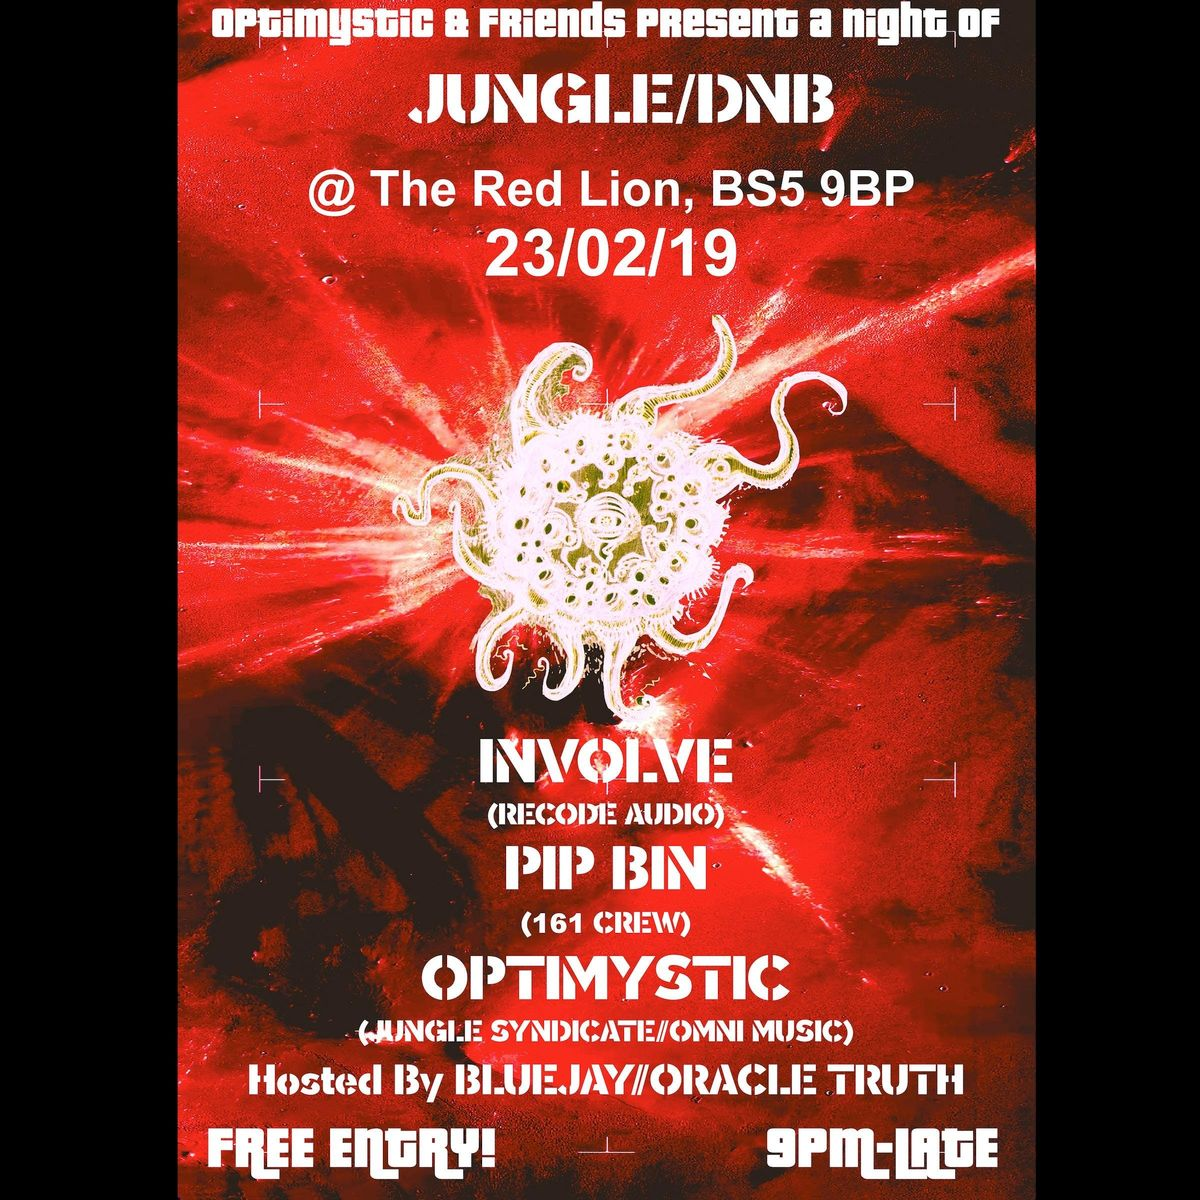 Optimystic & Friends Free JungleDnb Session 17